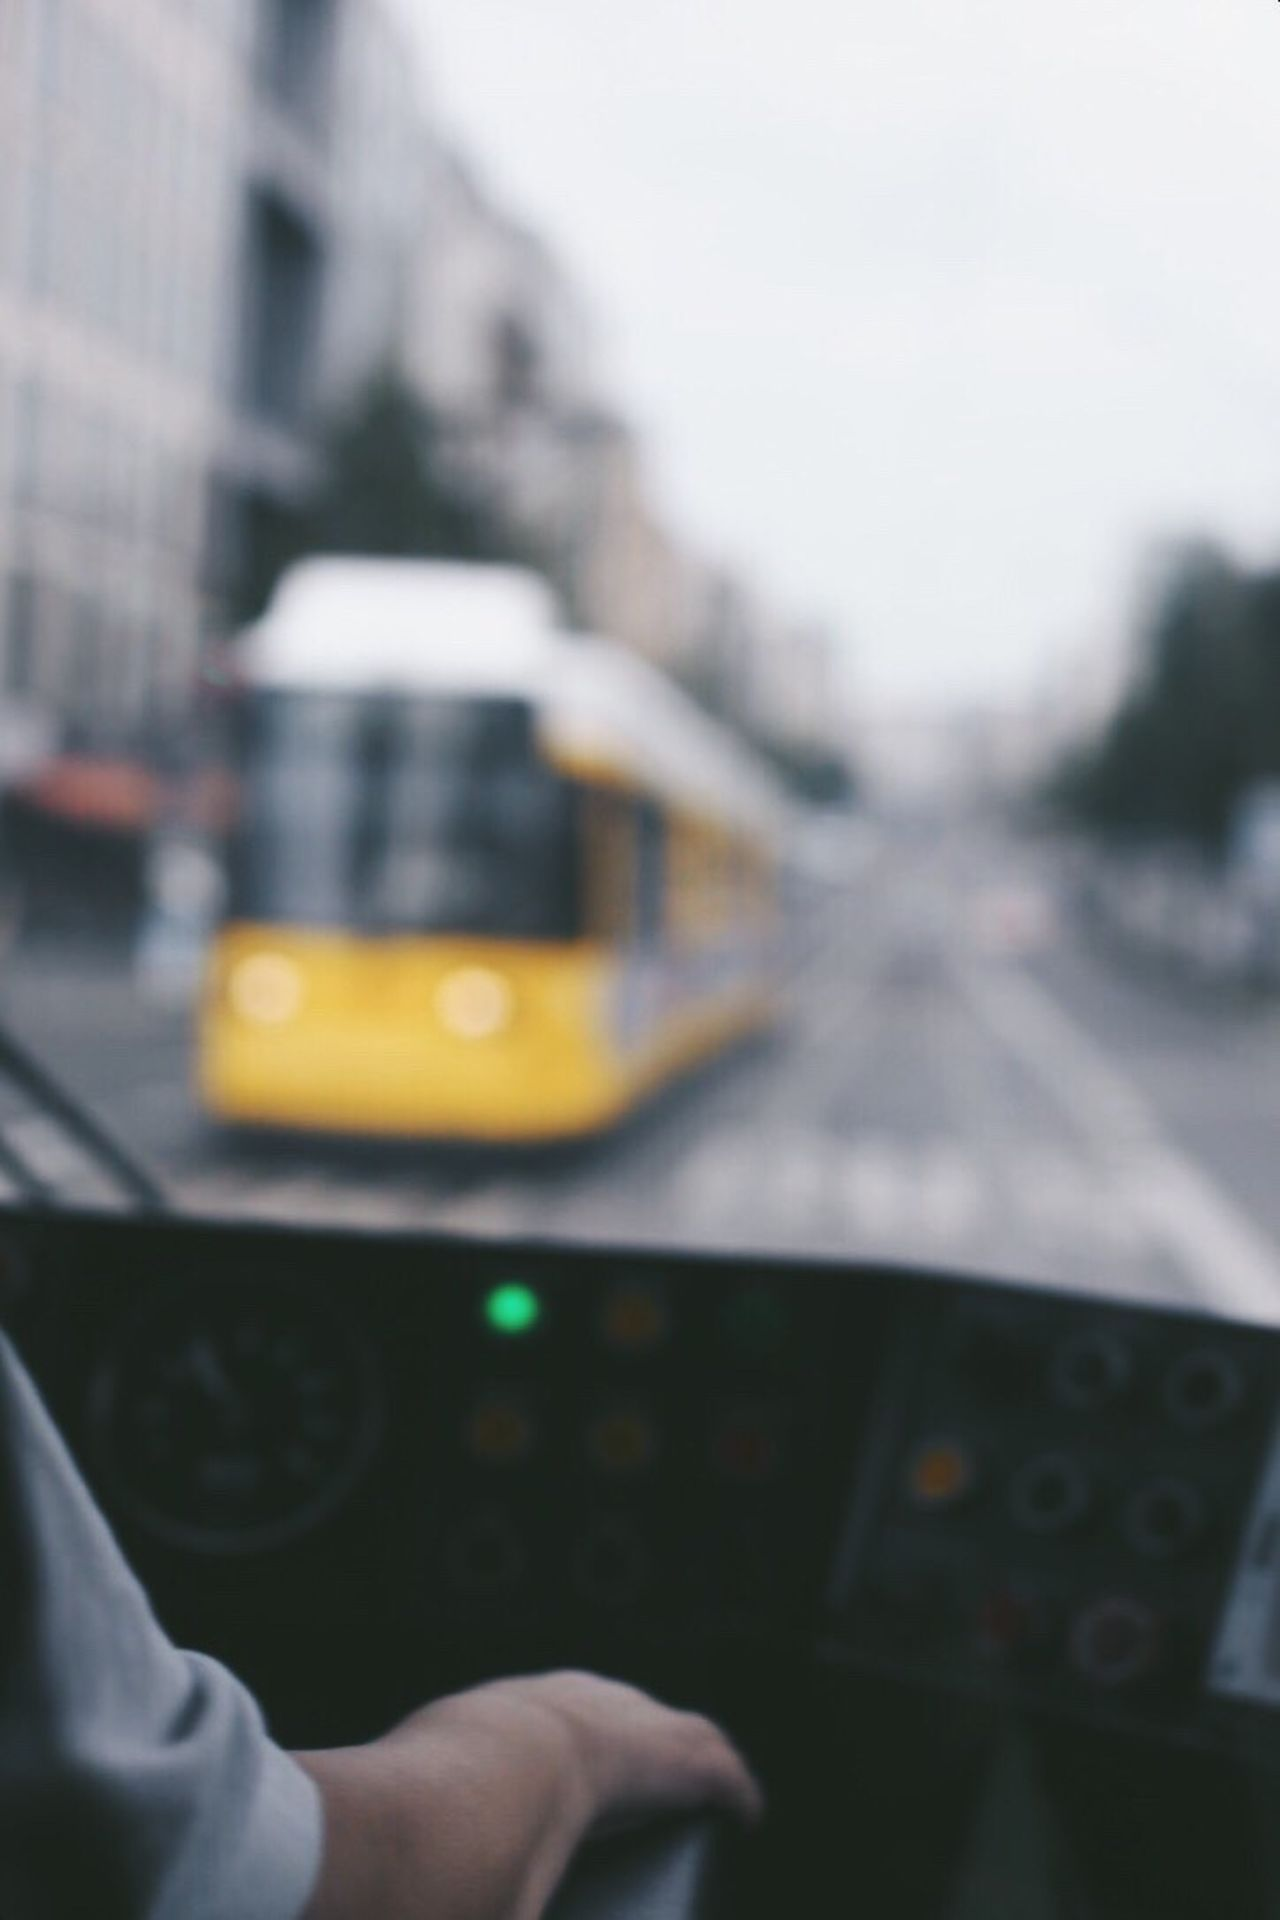 Tram Transportation Vehicle Interior Windshield Mode Of Transport Travel Driving Dashboard Windscreen Real People Human Hand Human Body Part Land Vehicle One Person Day Car Interior Public Transportation Cockpit Airplane Men